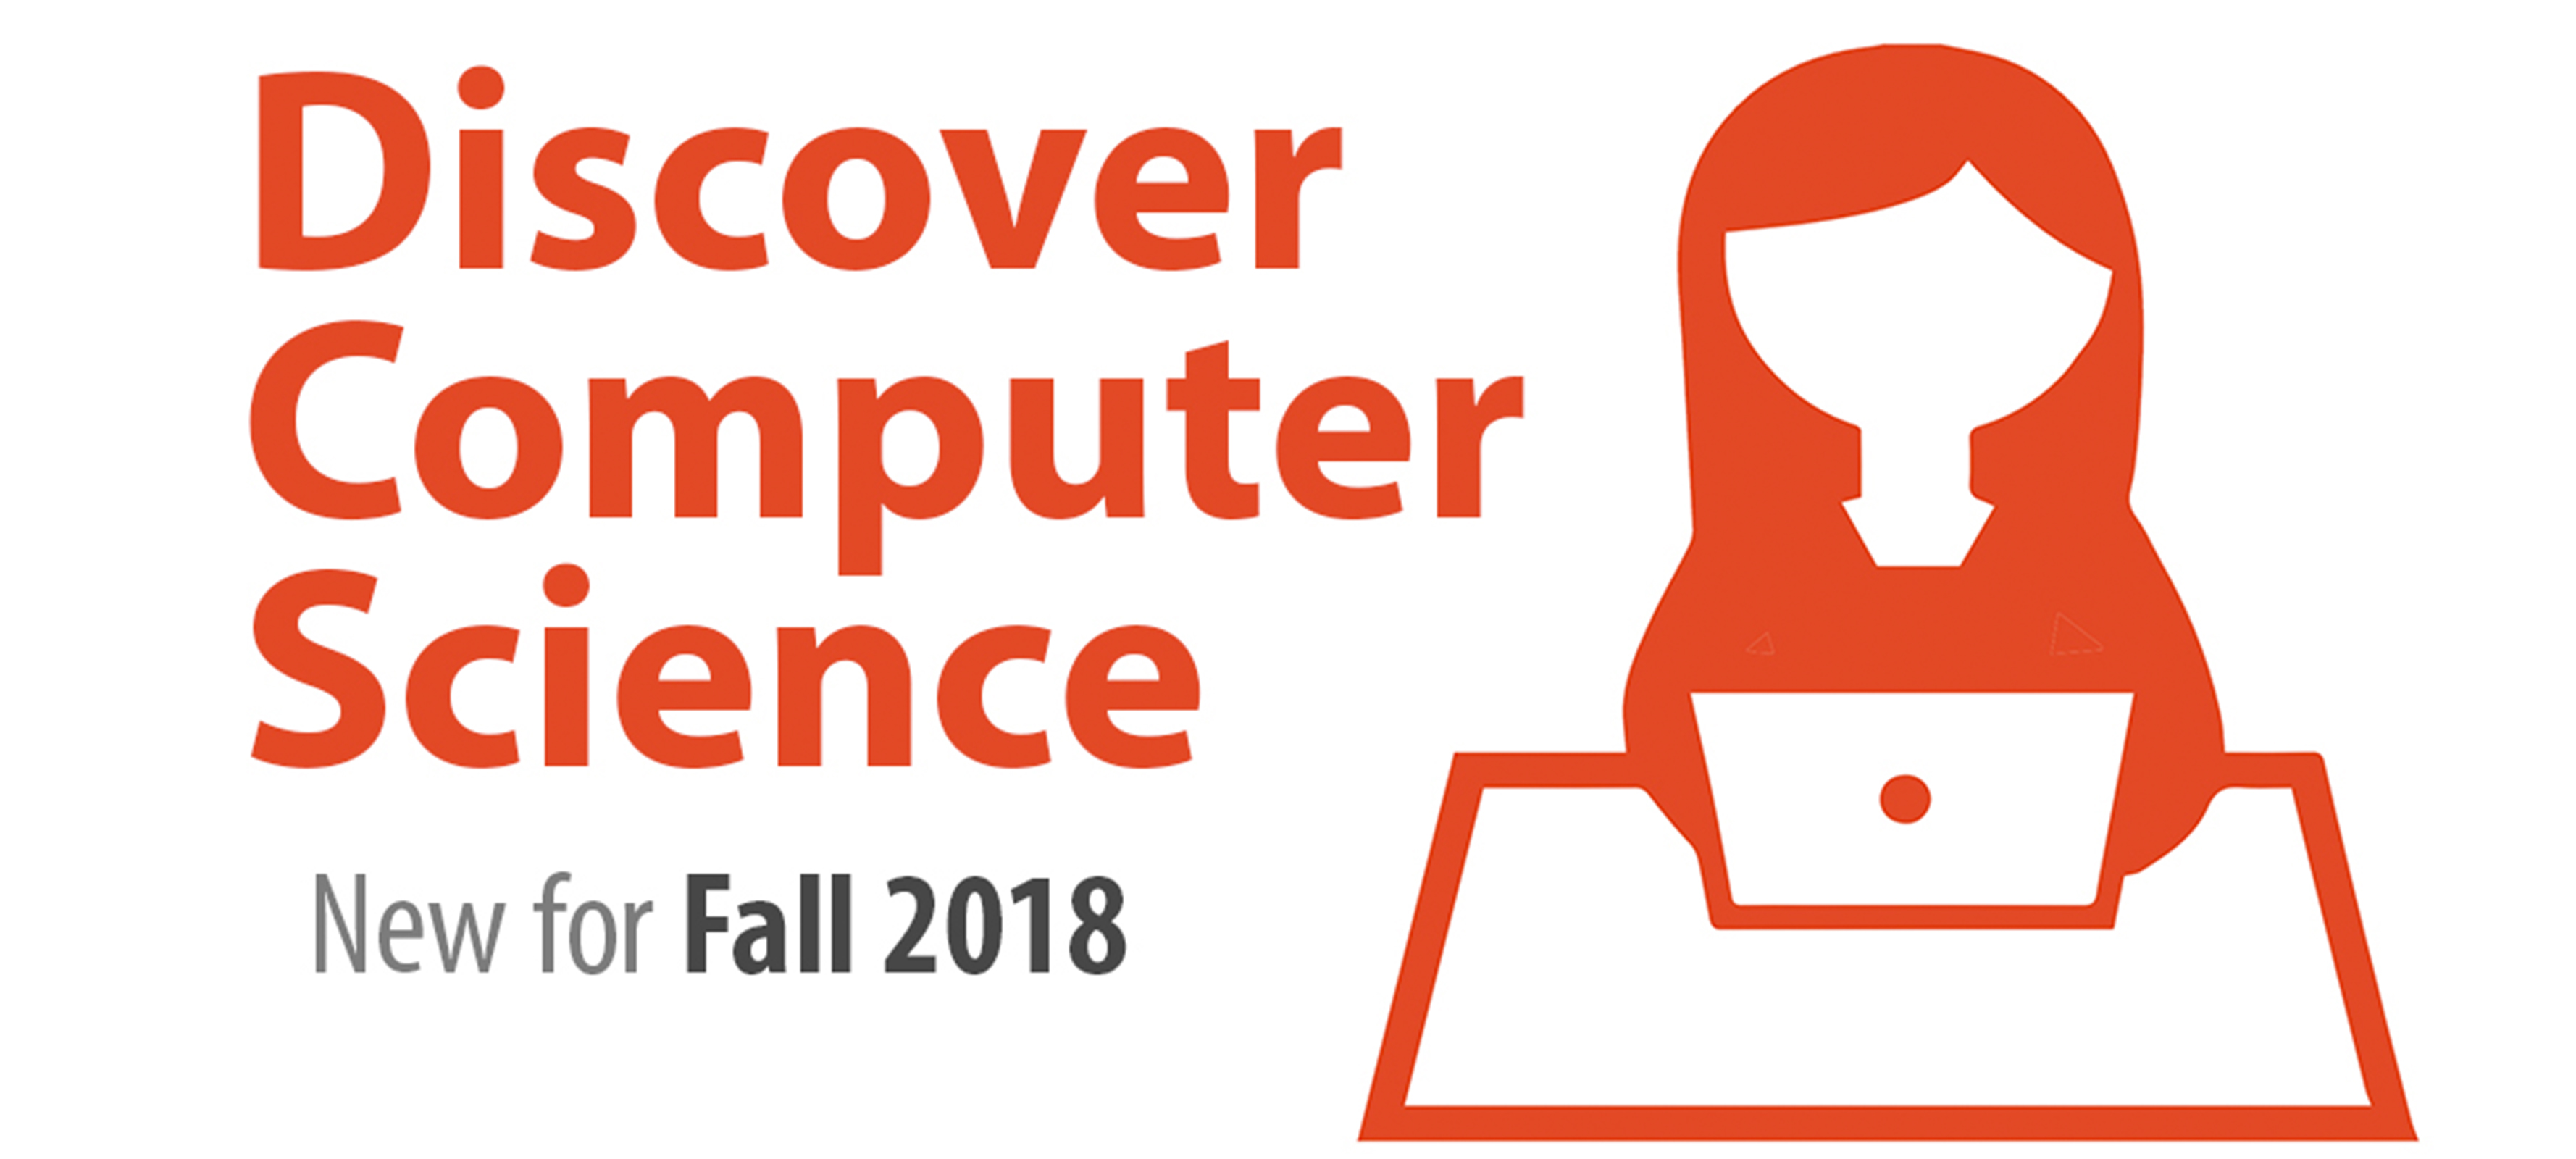 Discover Computer Science